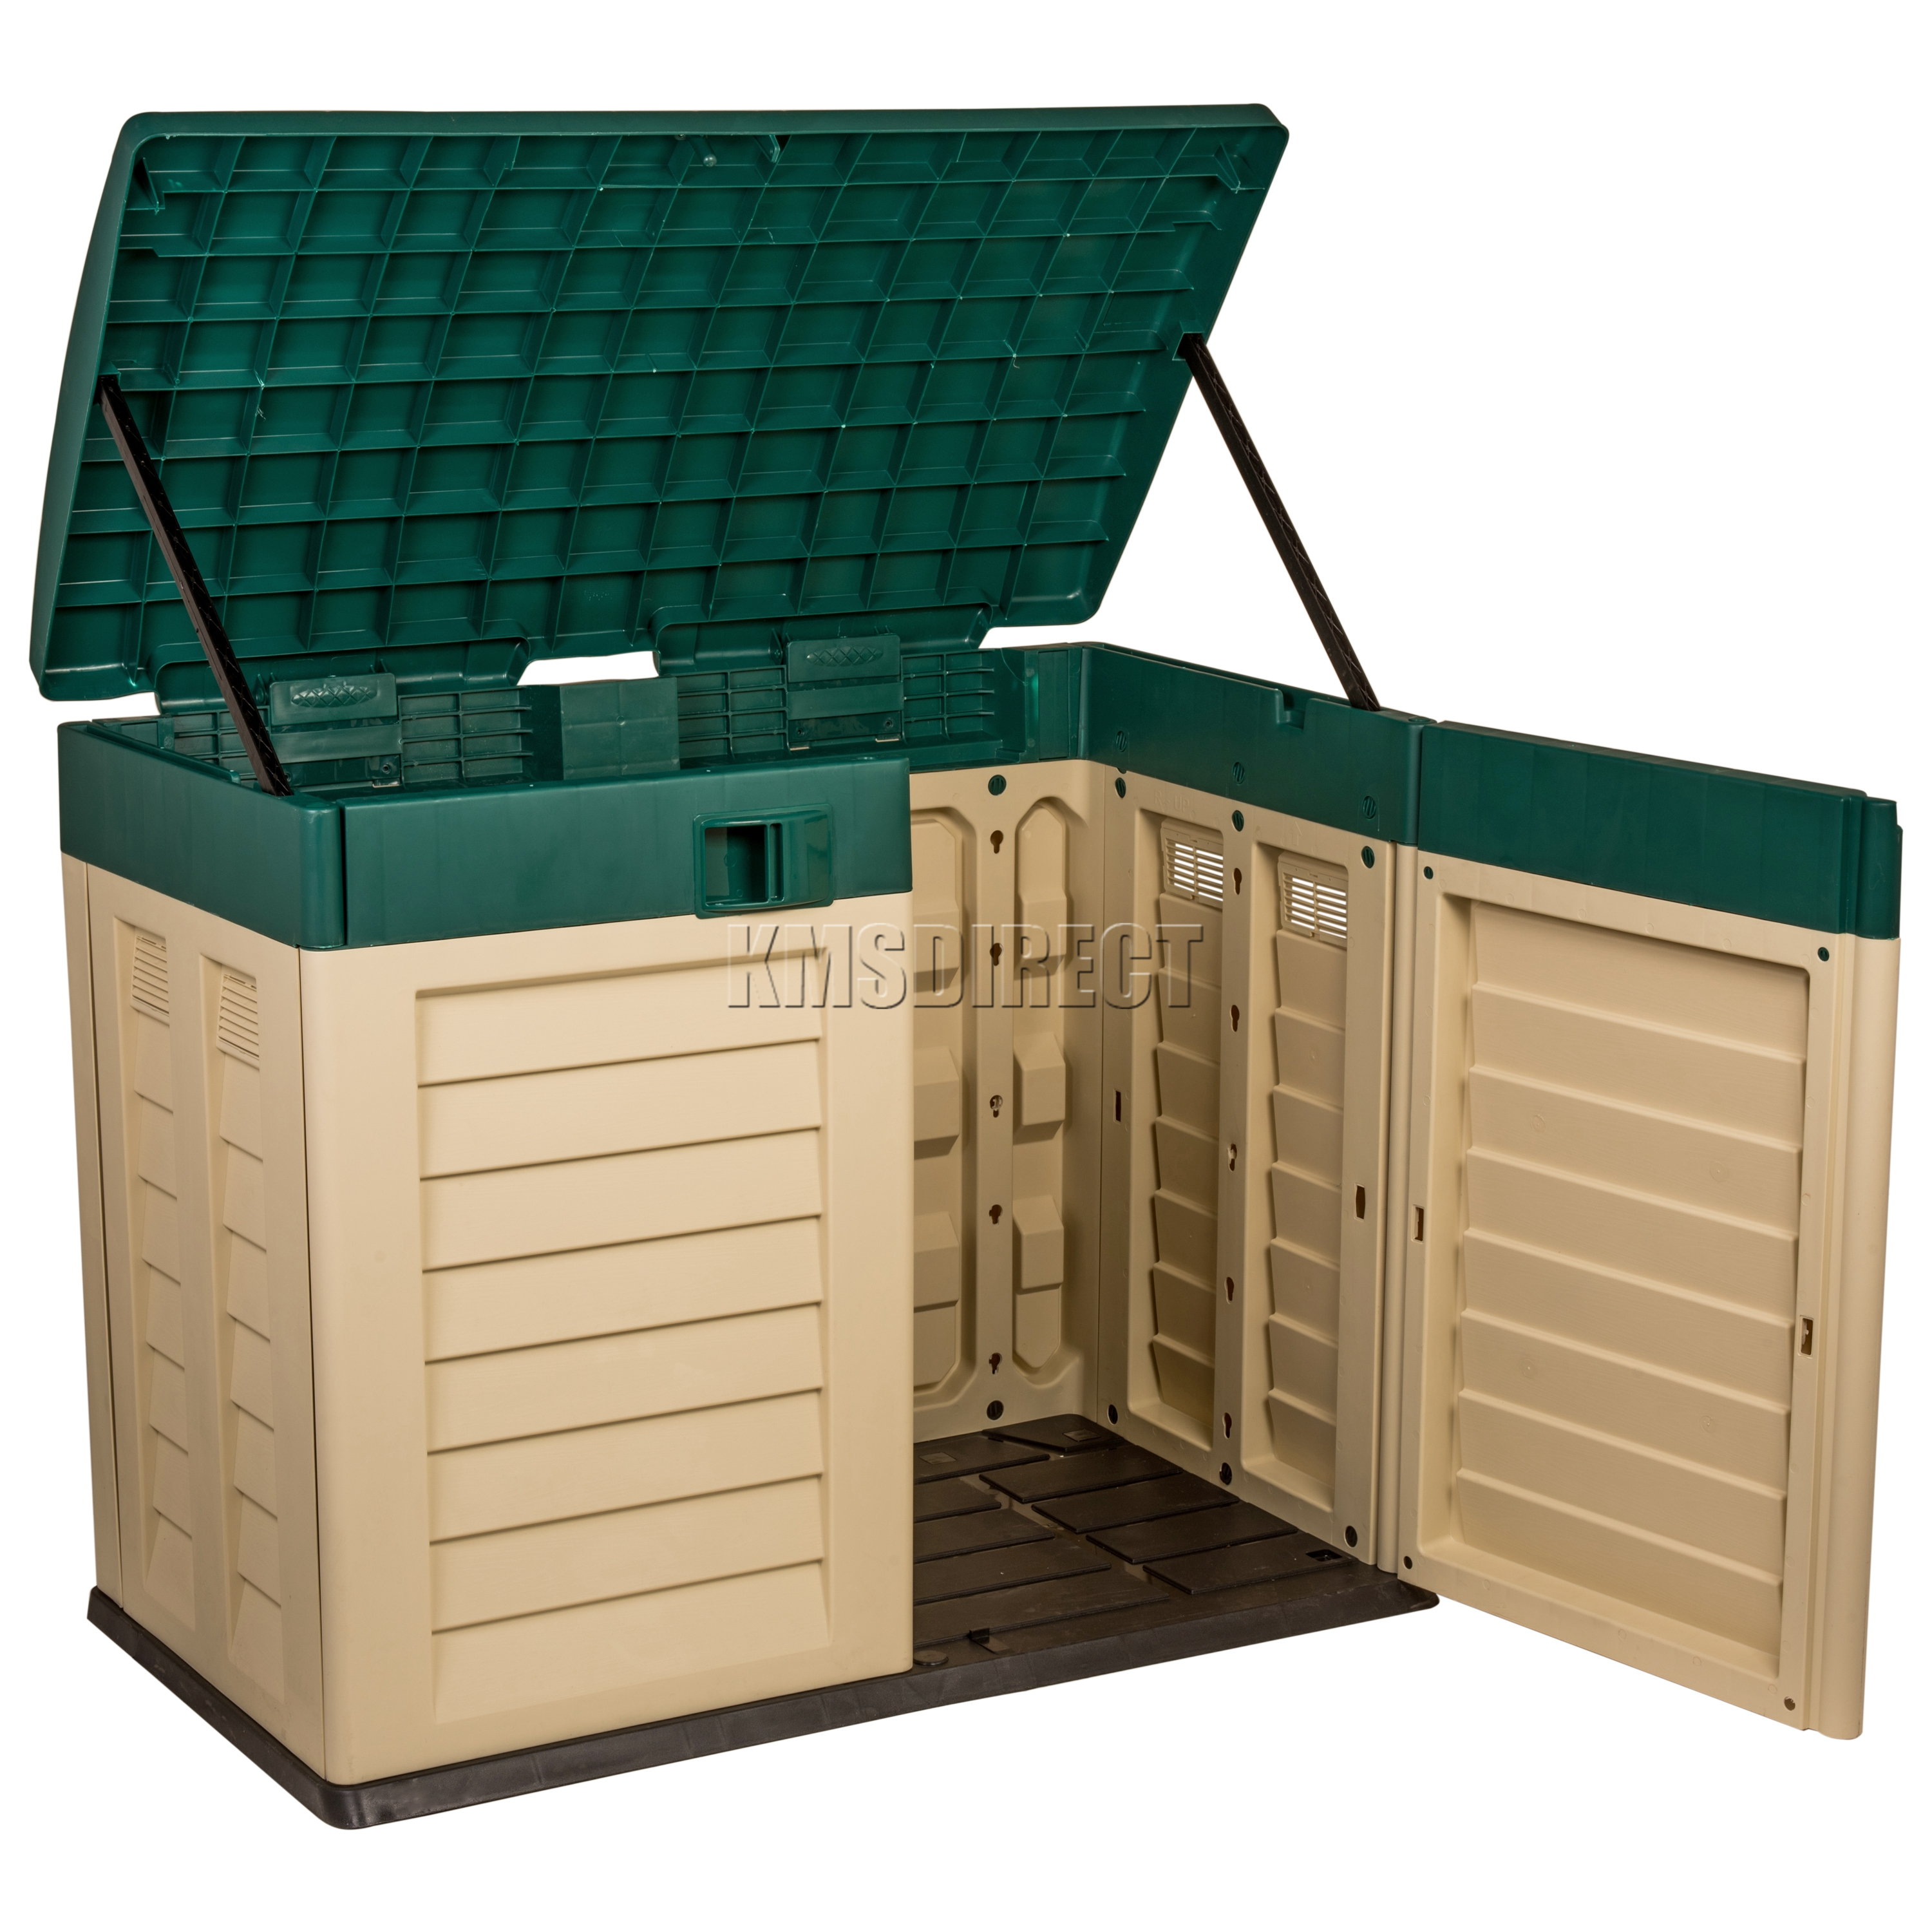 Garden Sheds Jersey Channel Islands starplast outdoor plastic garden low shed box chest storage unit